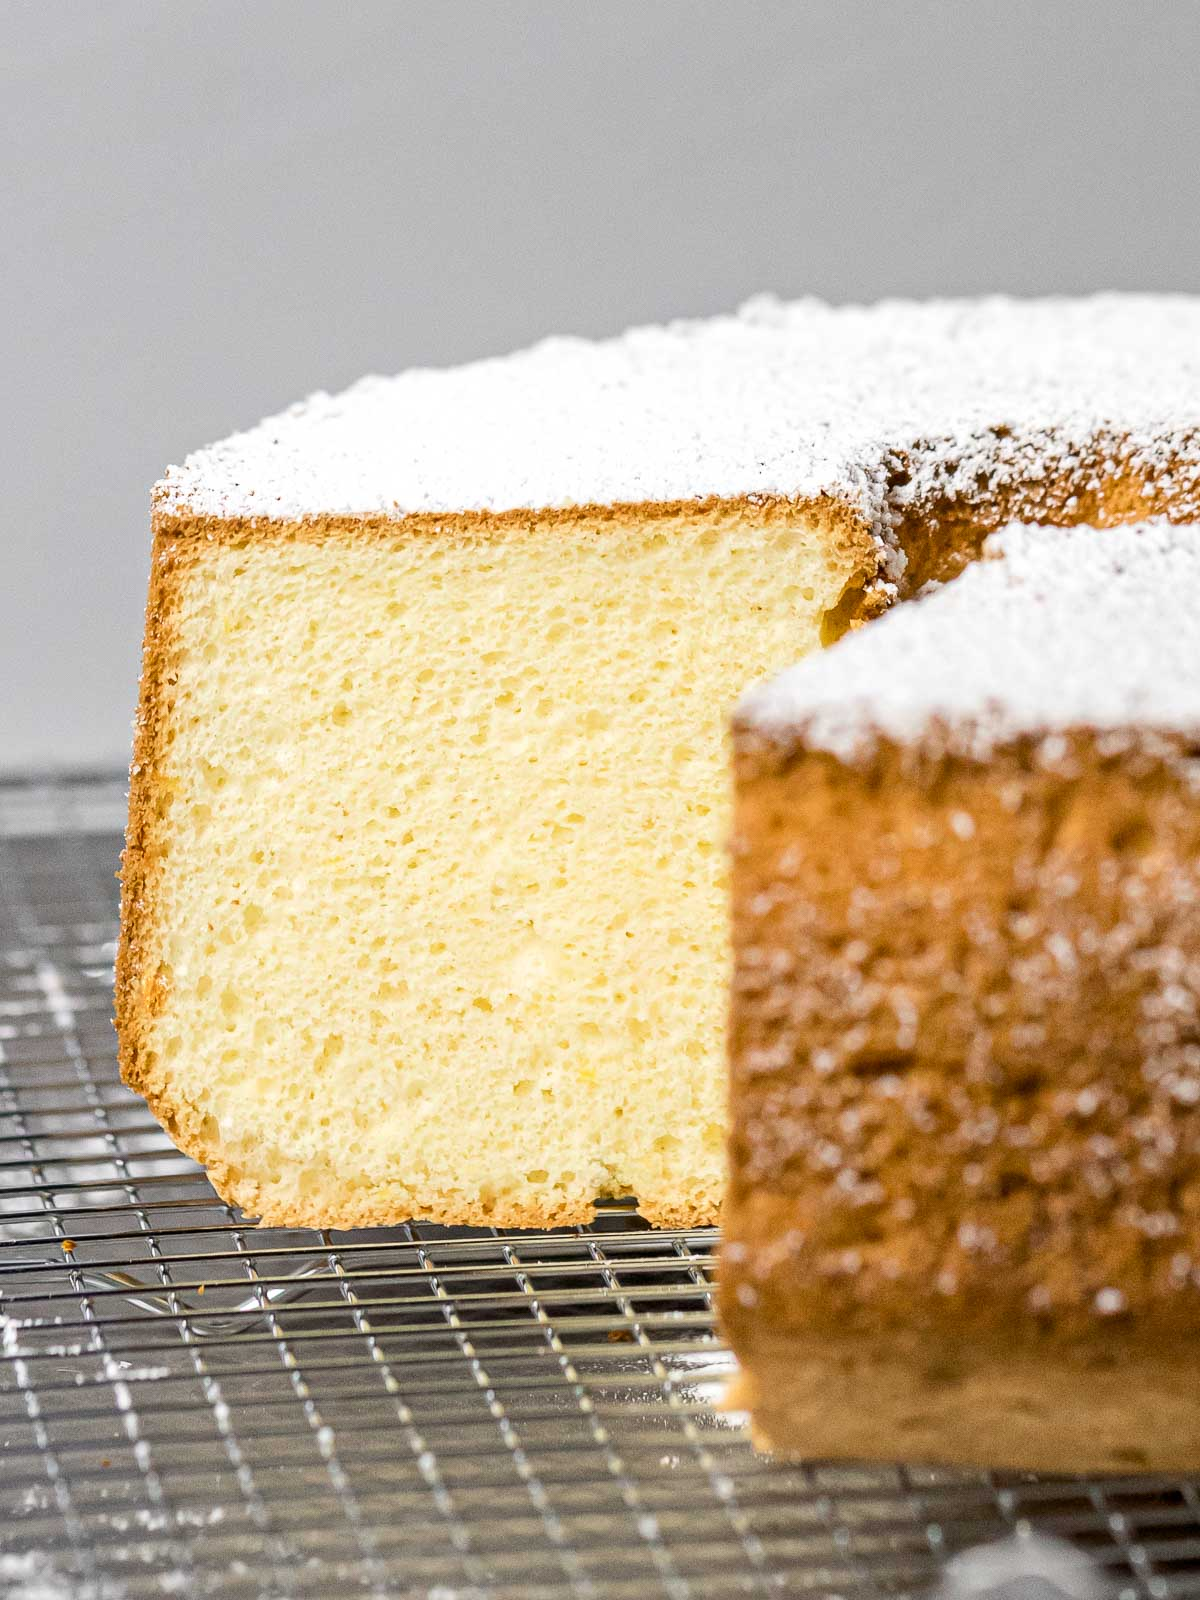 cross section of fluffy chiffon cake on a wire rack dusted with powdered sugar